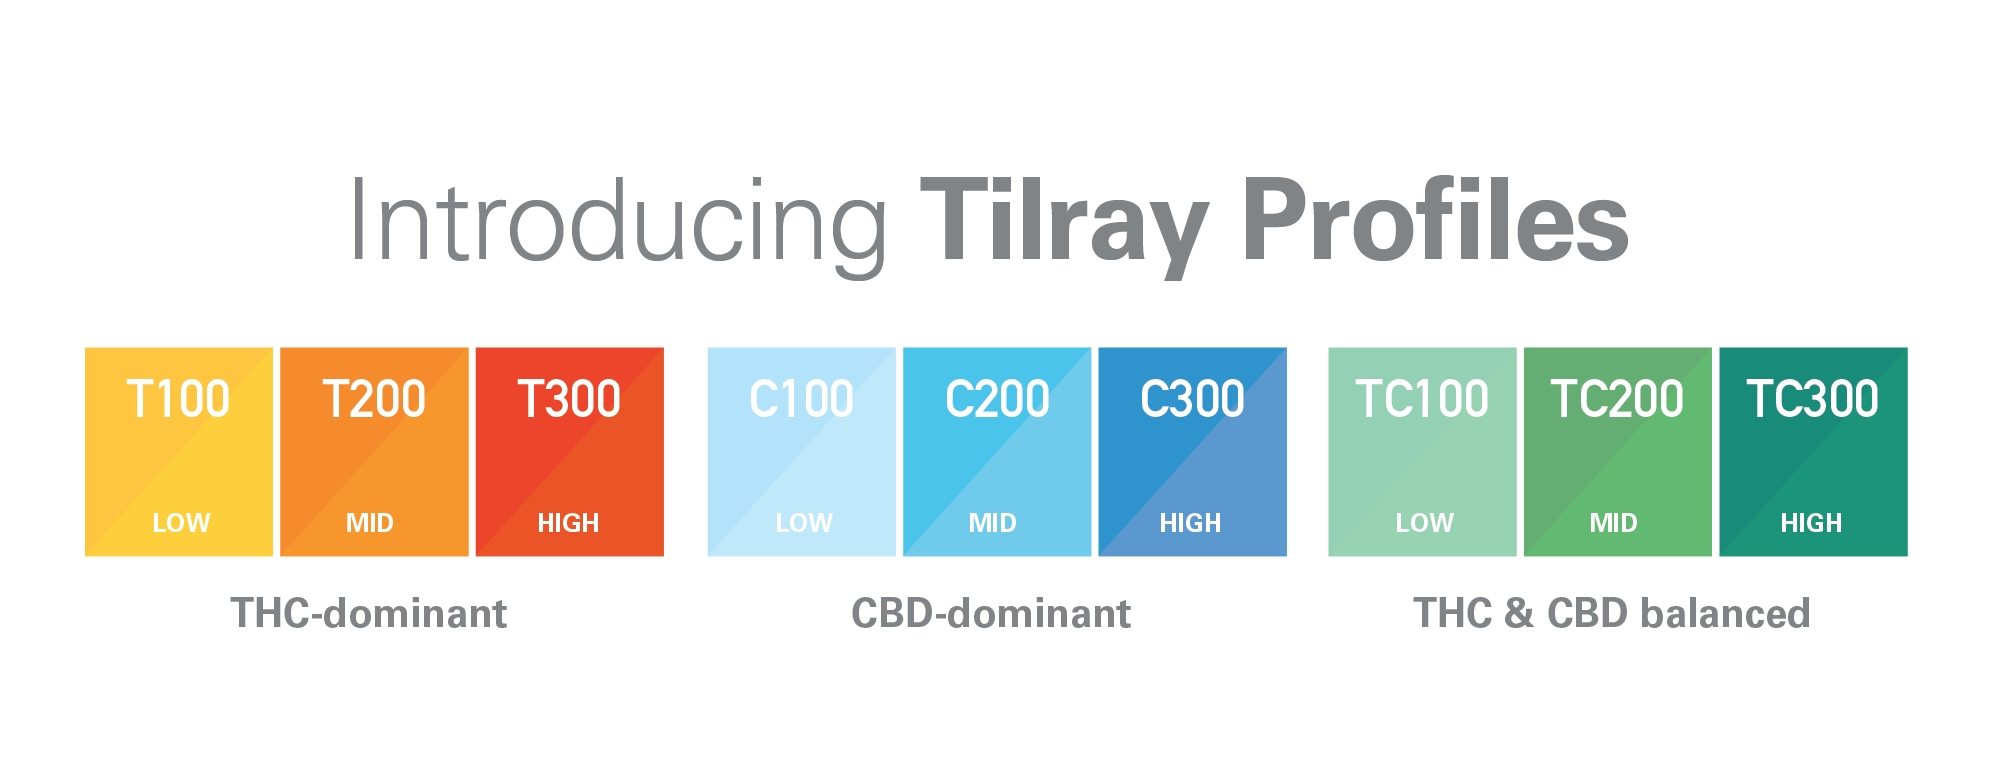 Tilray Profiles are a set of nine easy-to-understand categories that apply to all Tilray products available to patients in Canada, including whole flower, blends, oil drops, and capsules. (Graphic: Business Wire)